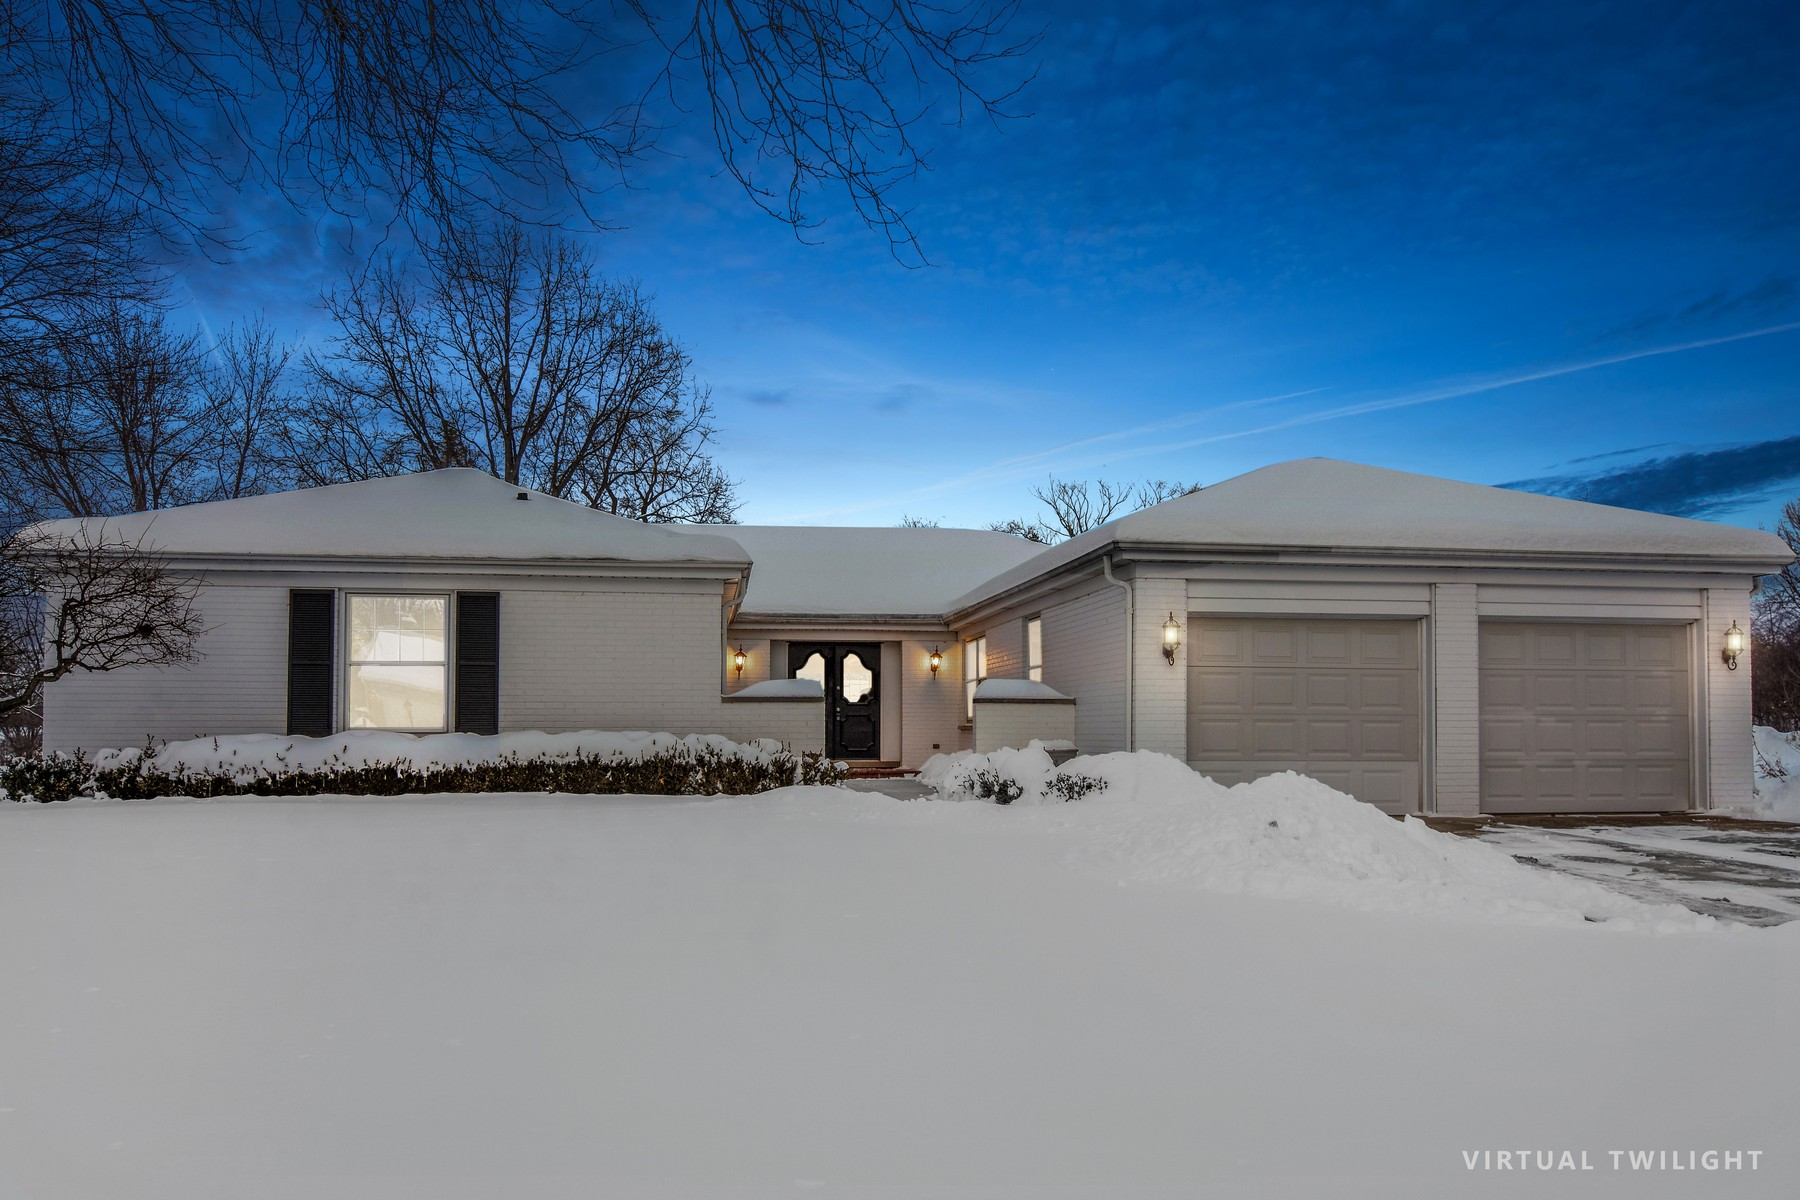 Single Family Home for Sale at Fabulous move in beautifully remodeled open ranch 1230 Burr Oak Lane, Barrington, Illinois, 60010 United States